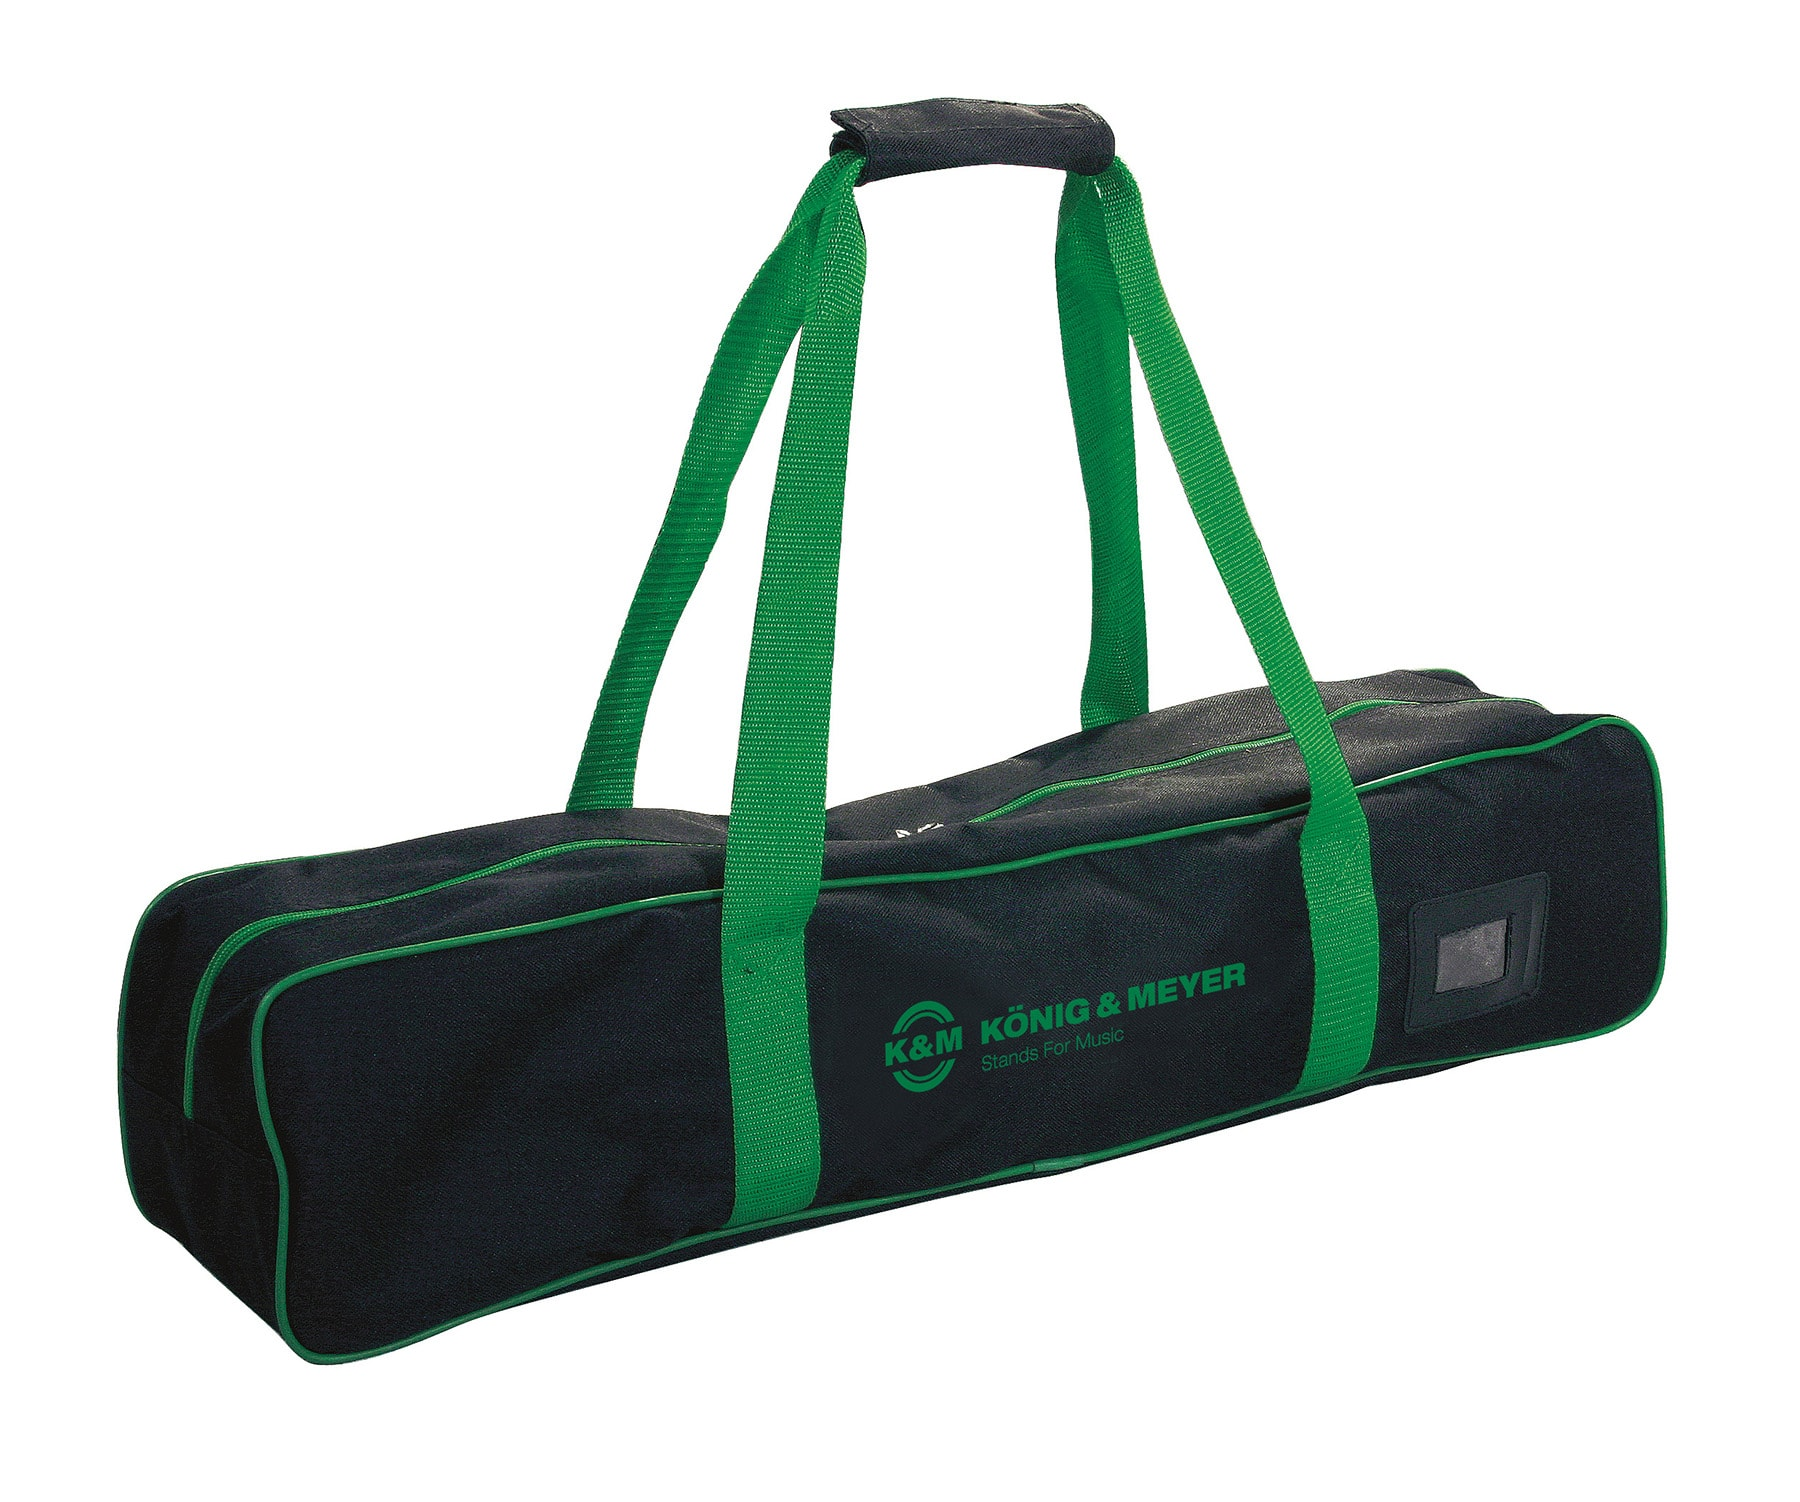 KM14102 - Carrying case for instrument stand